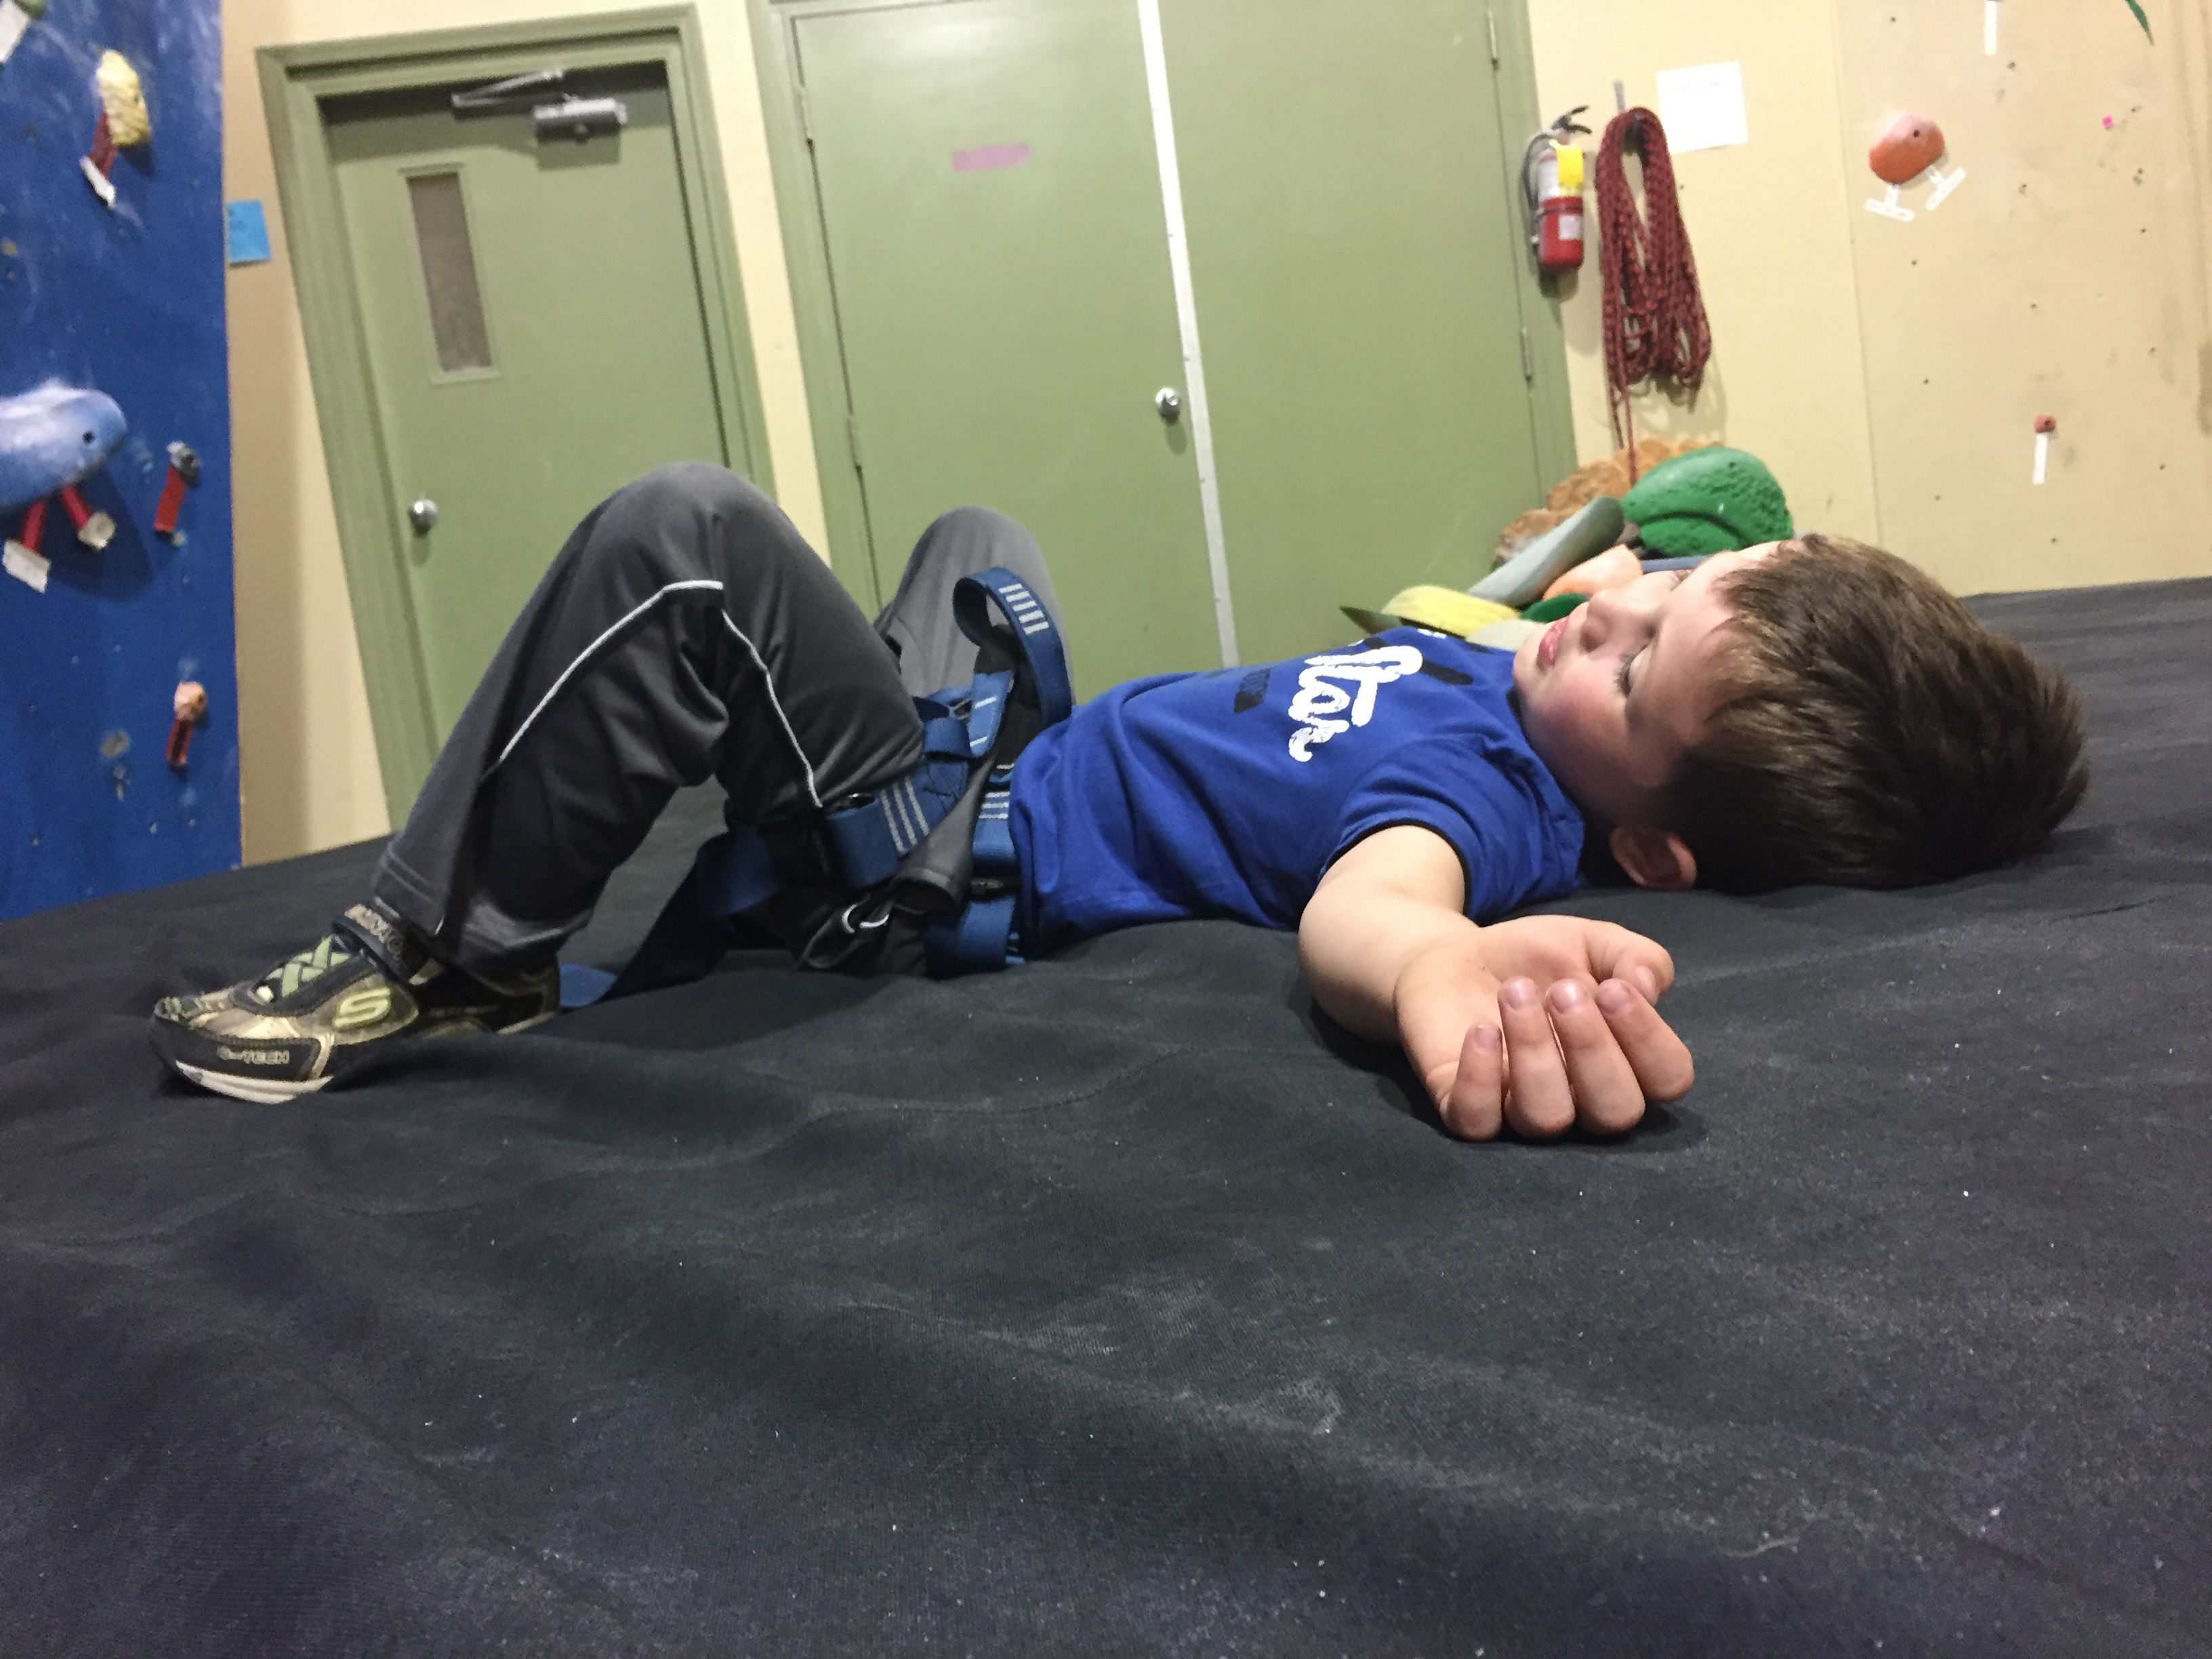 Project Climbing Center Abbotsford - Tired Boy with #ExploreBCbyBus